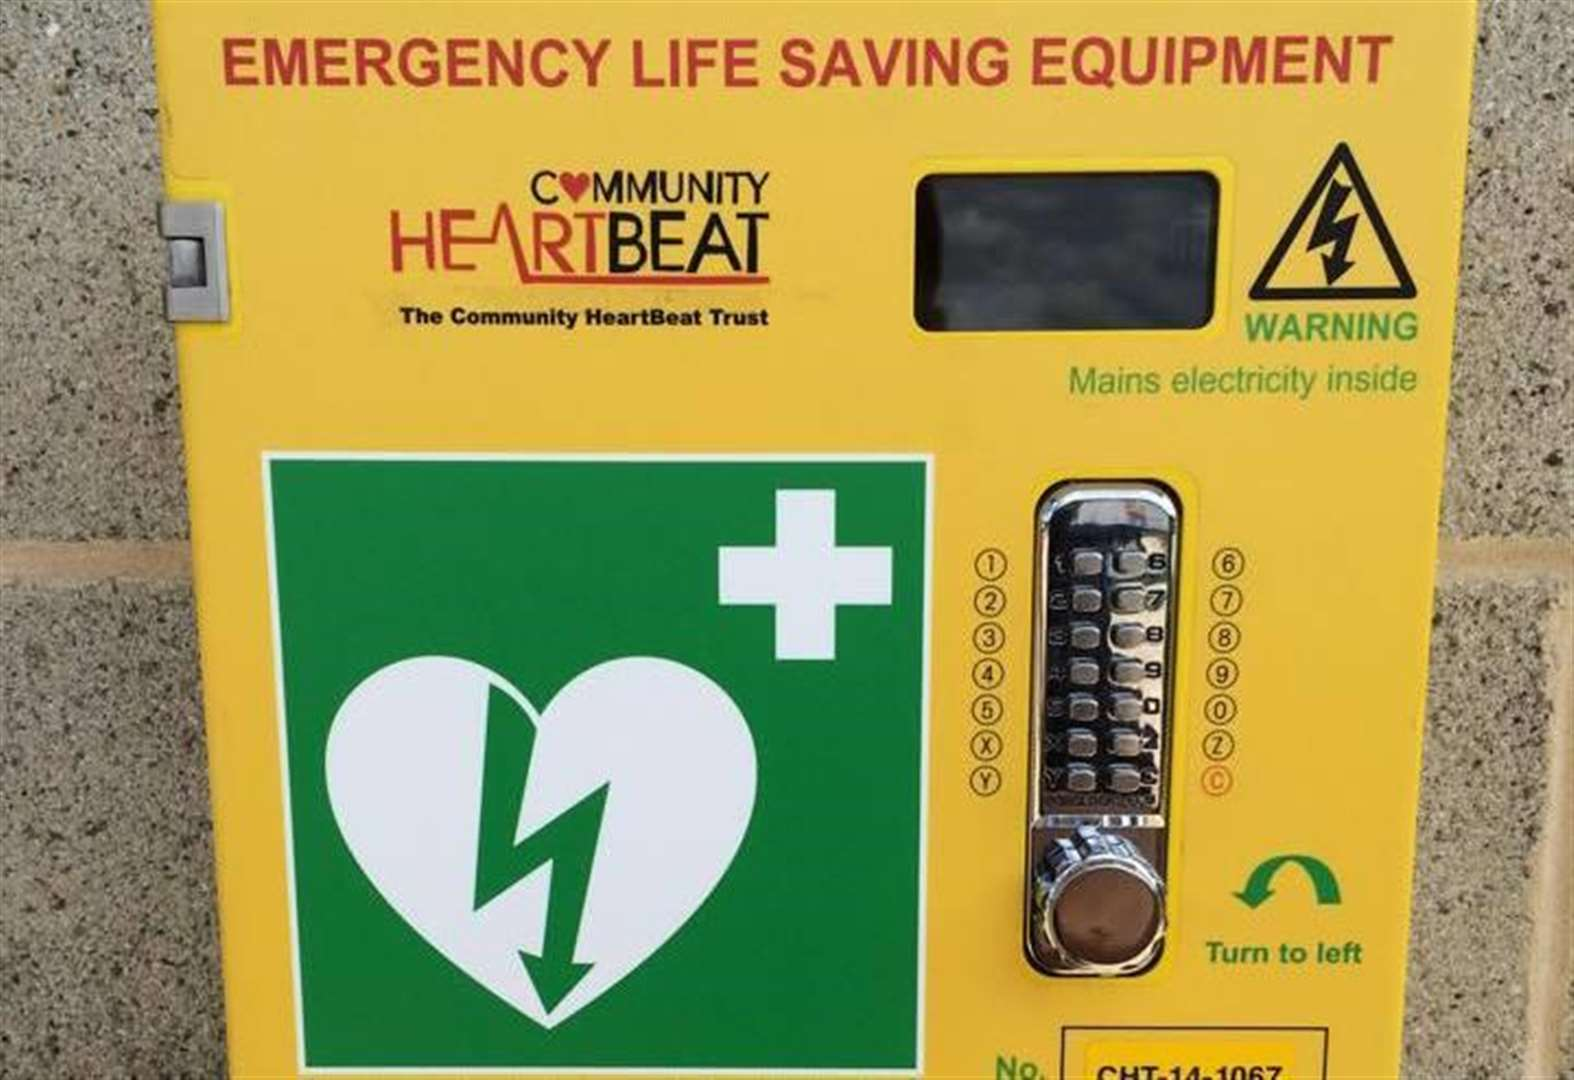 Drama as defibrillator used to save man after street collapse